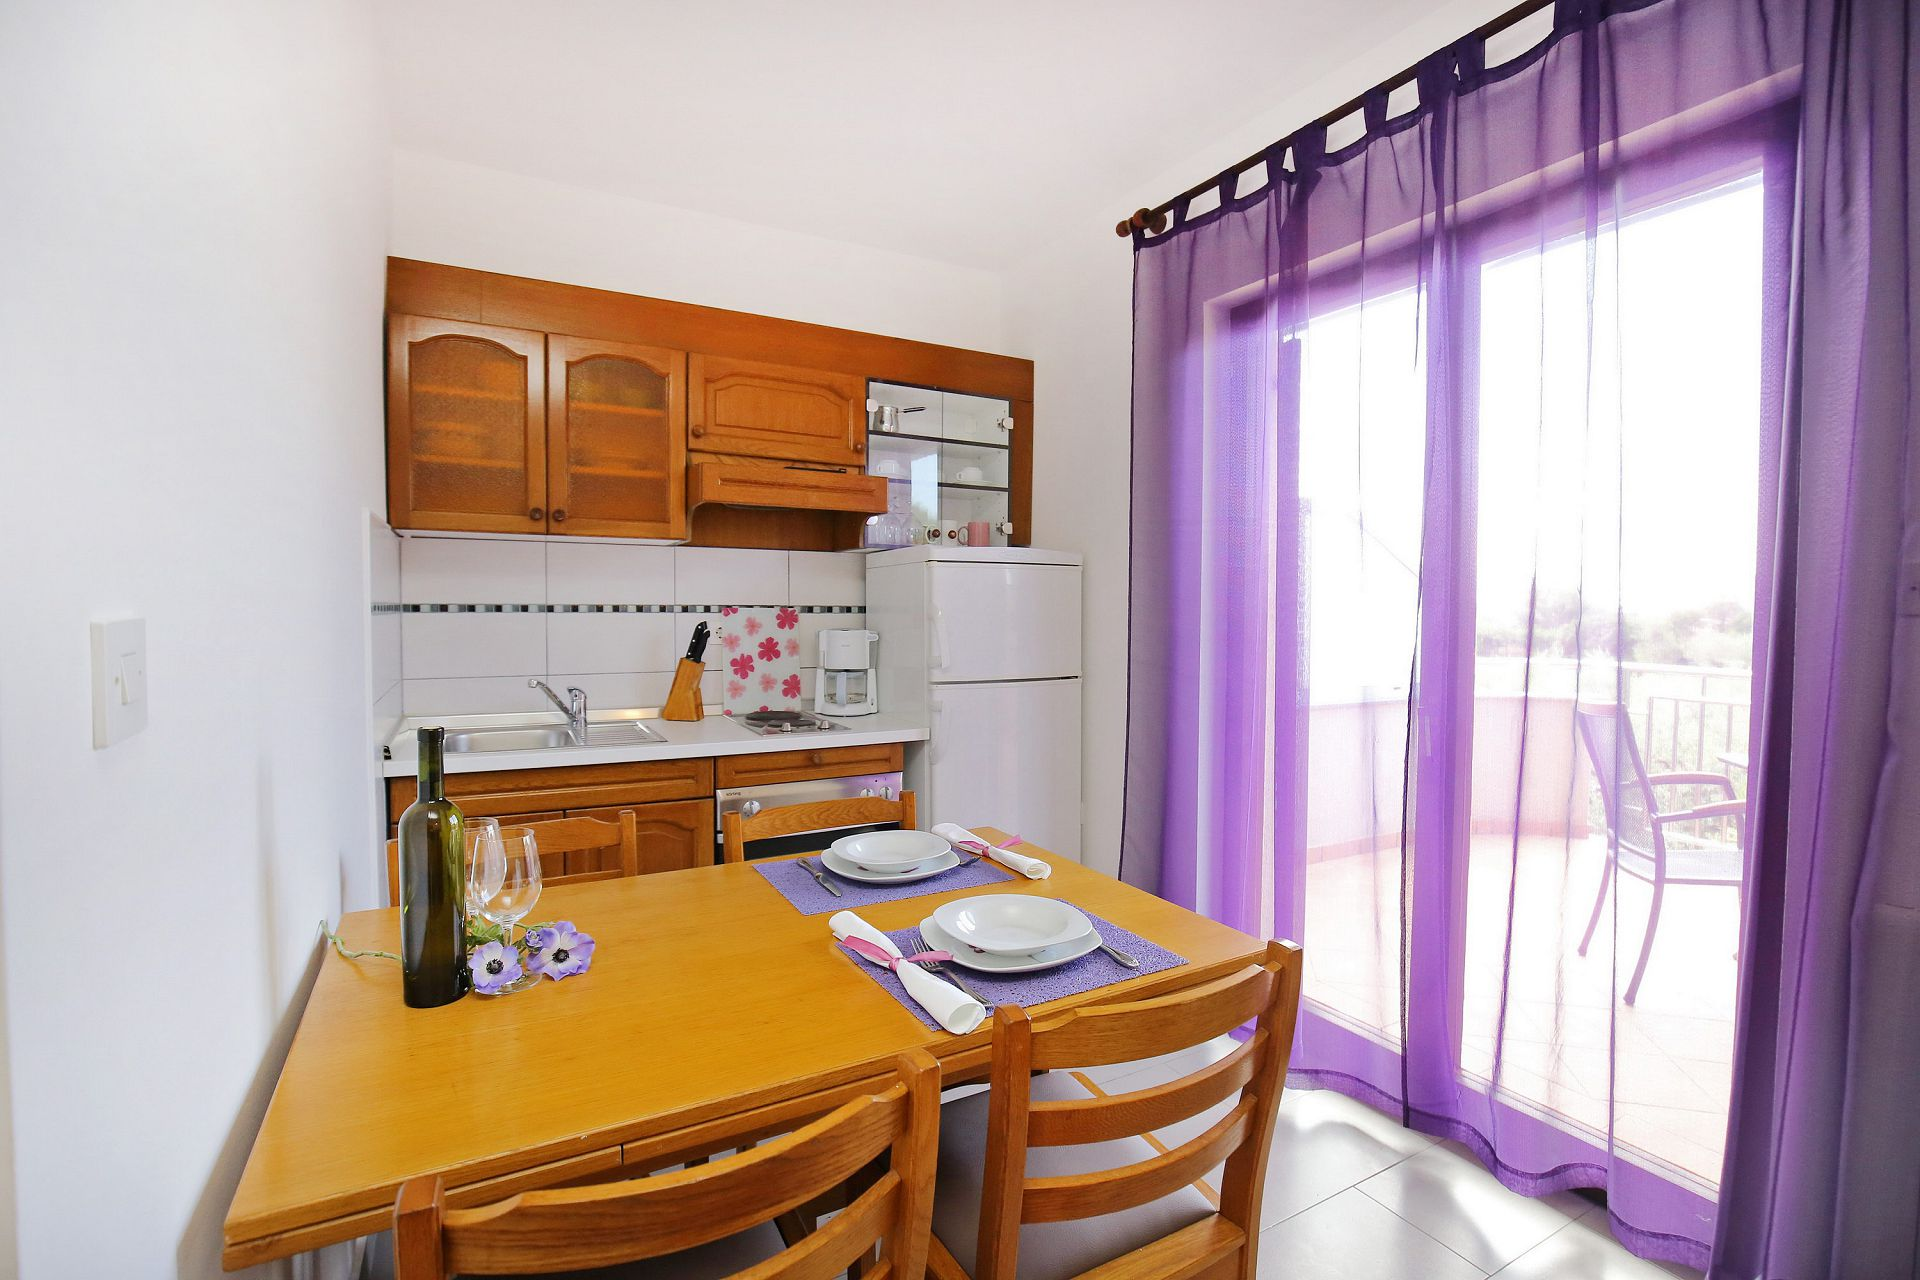 00418ZATZ - Zaton (Zadar) - Apartments Croatia - A2(2+2): kitchen and dining room